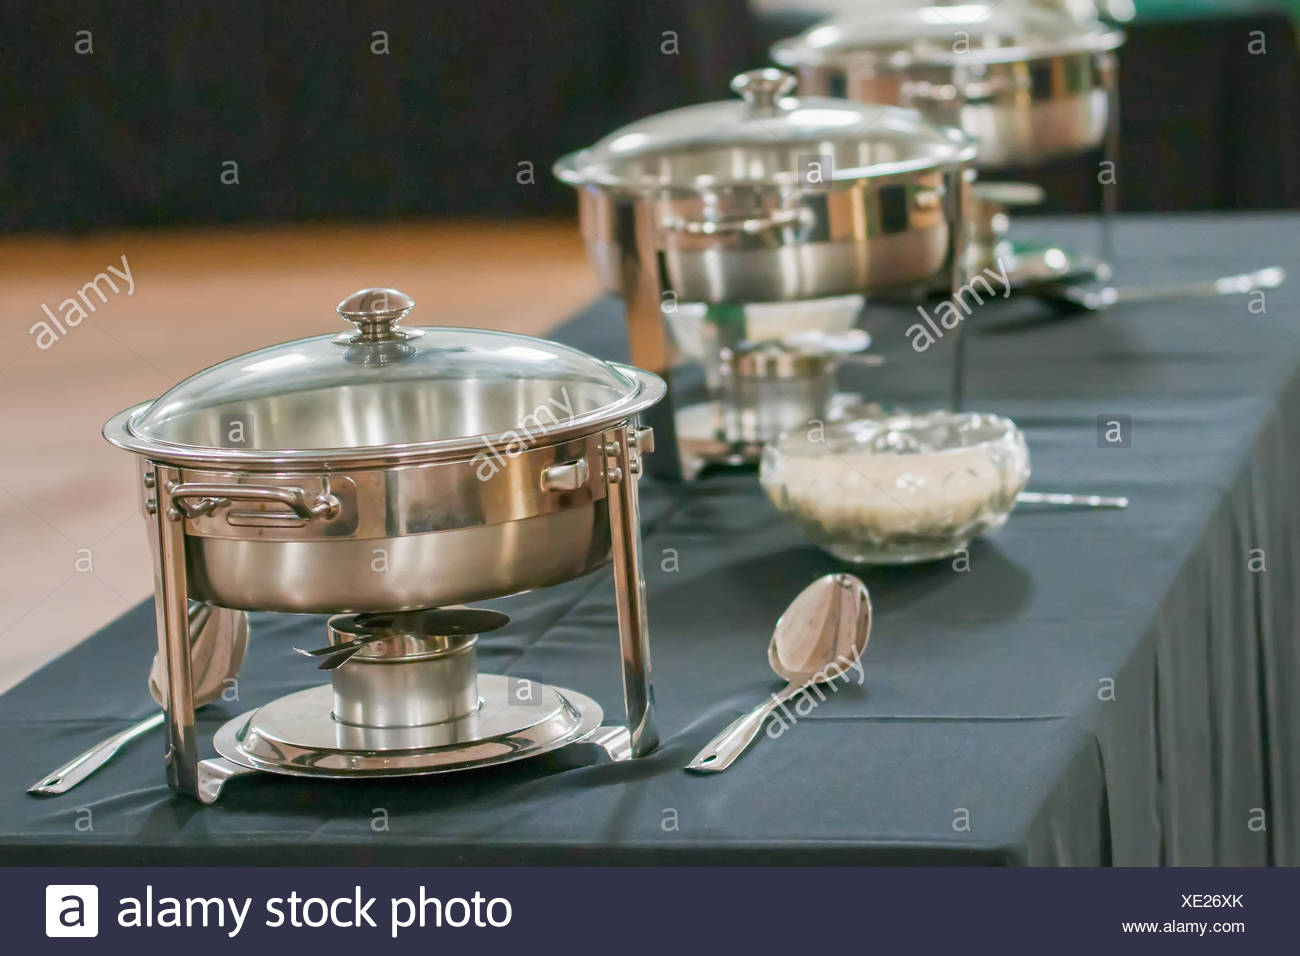 banquet table with chafing dish heaters - Stock Image